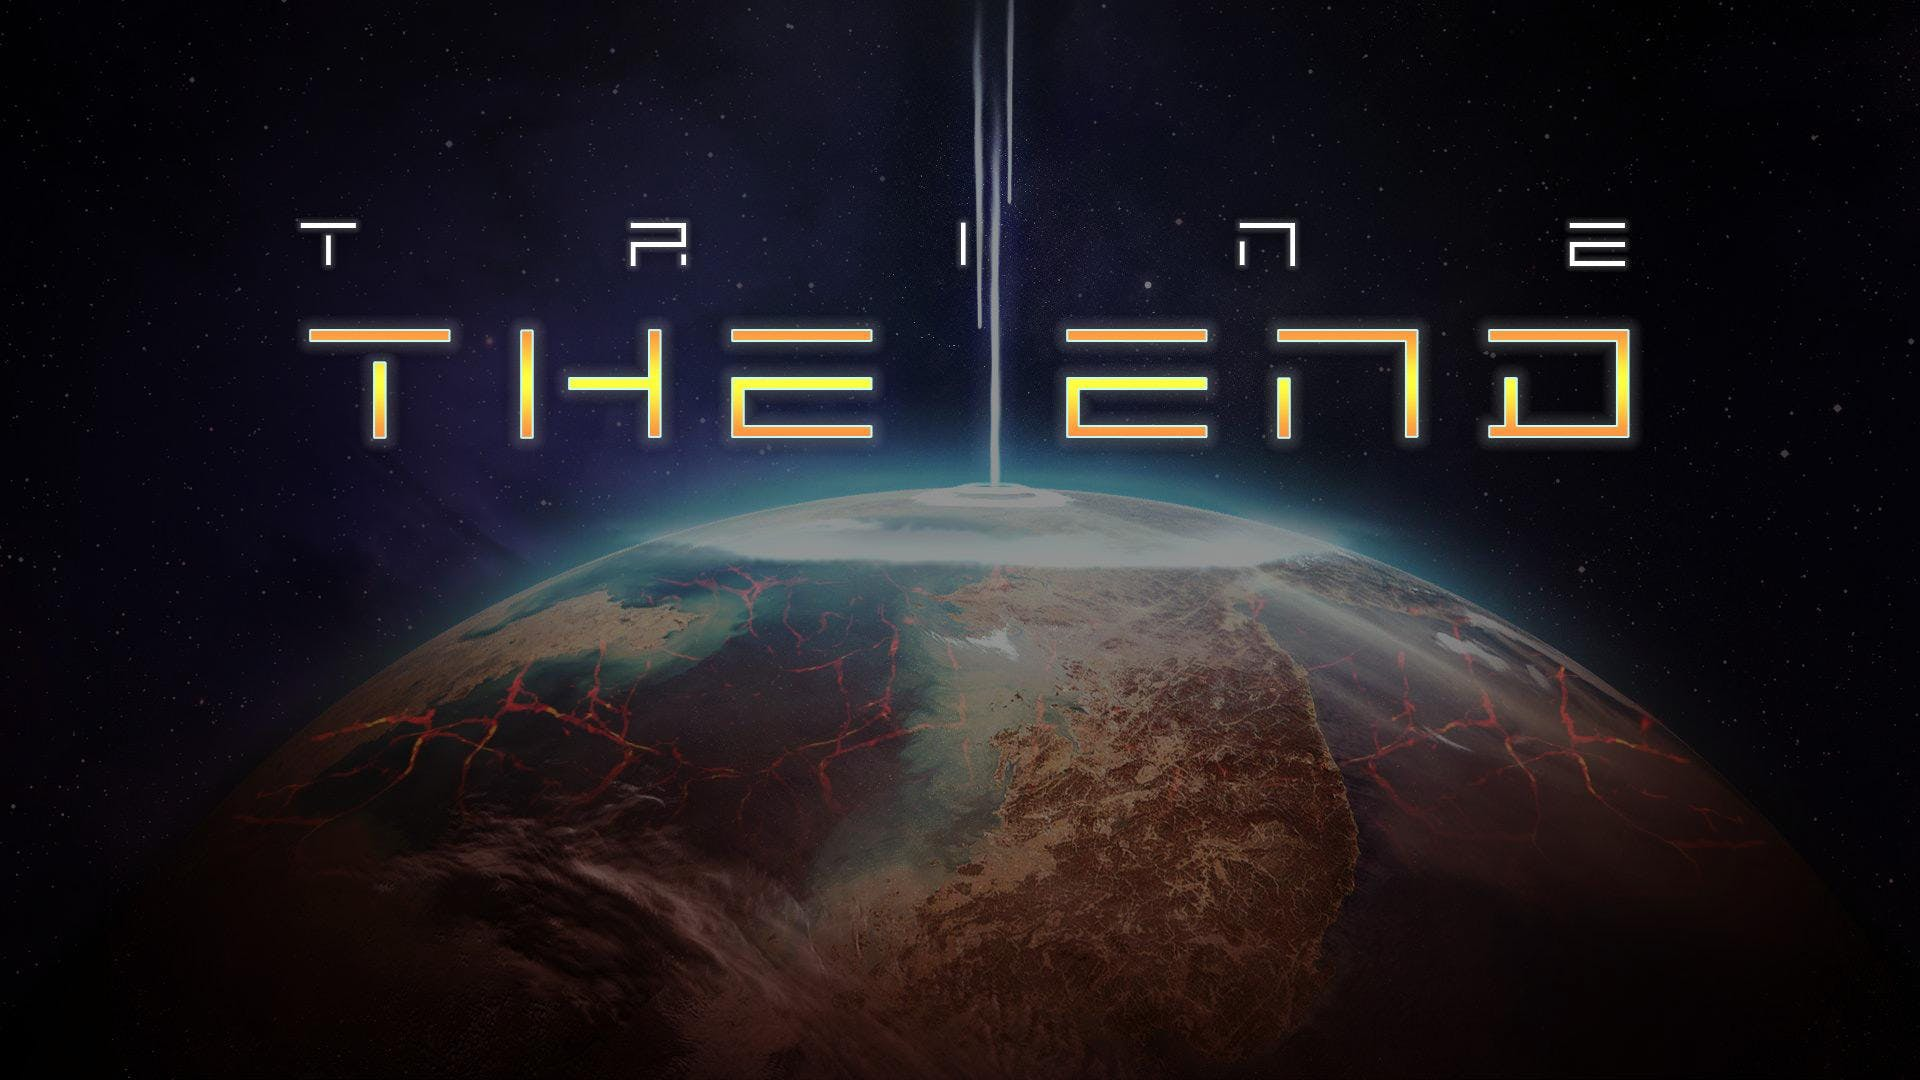 TRINE: The End of The World